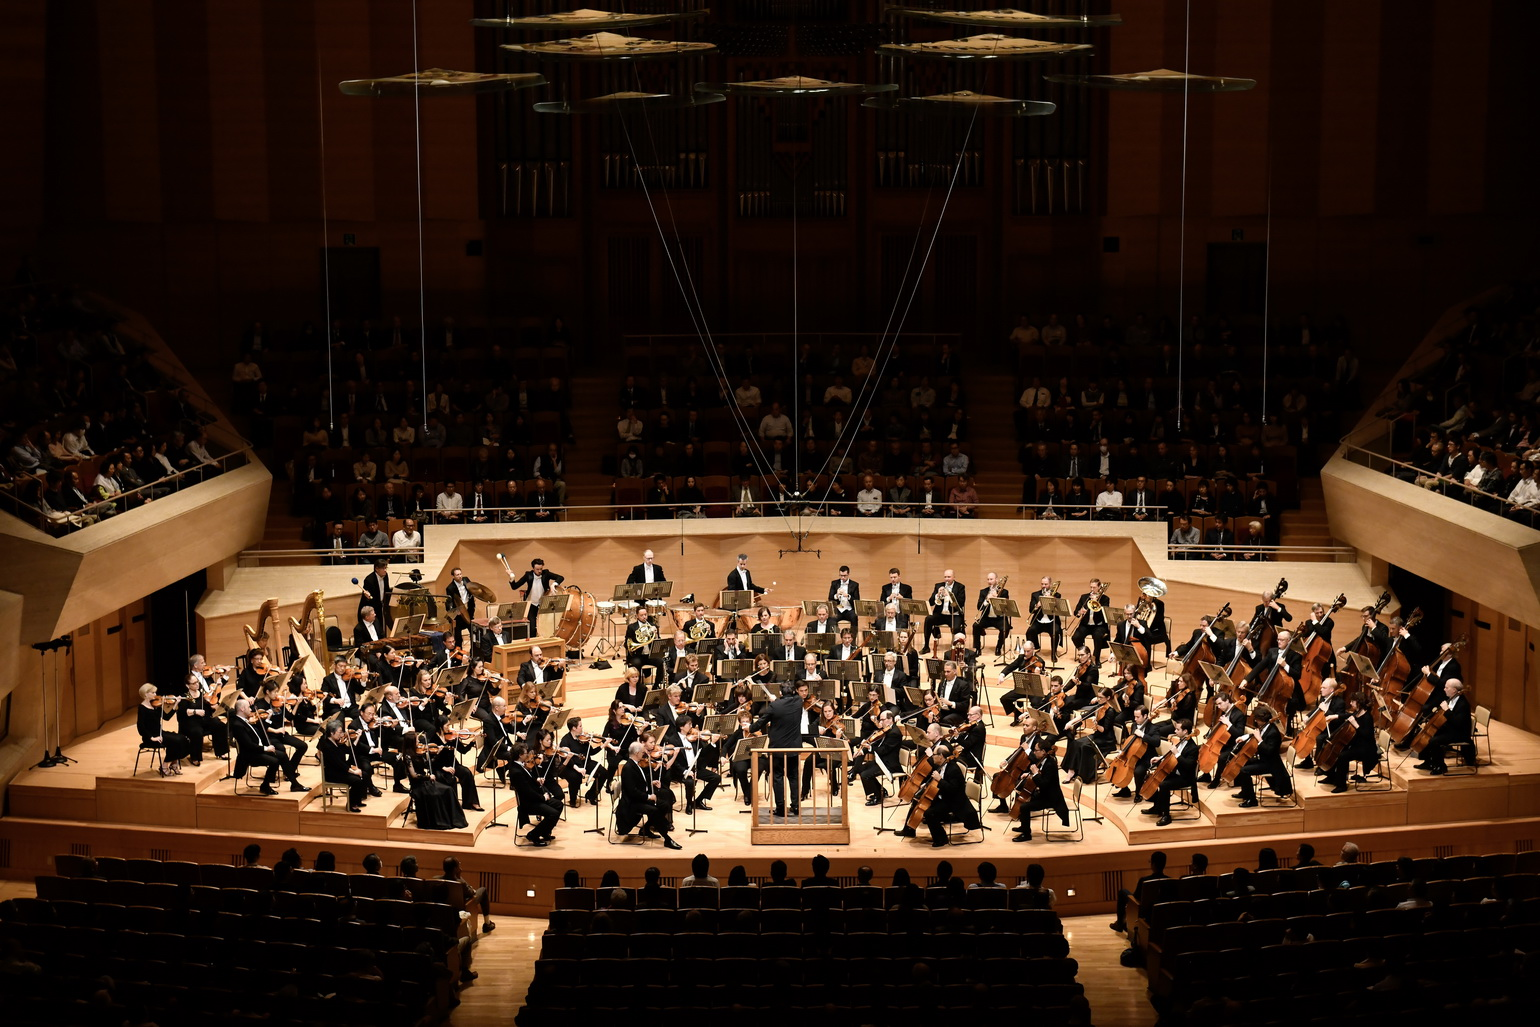 Andris Nelsons leads the Boston Symphony Orchestra during its tour in Japan. (Courtesy Suntory Hall)